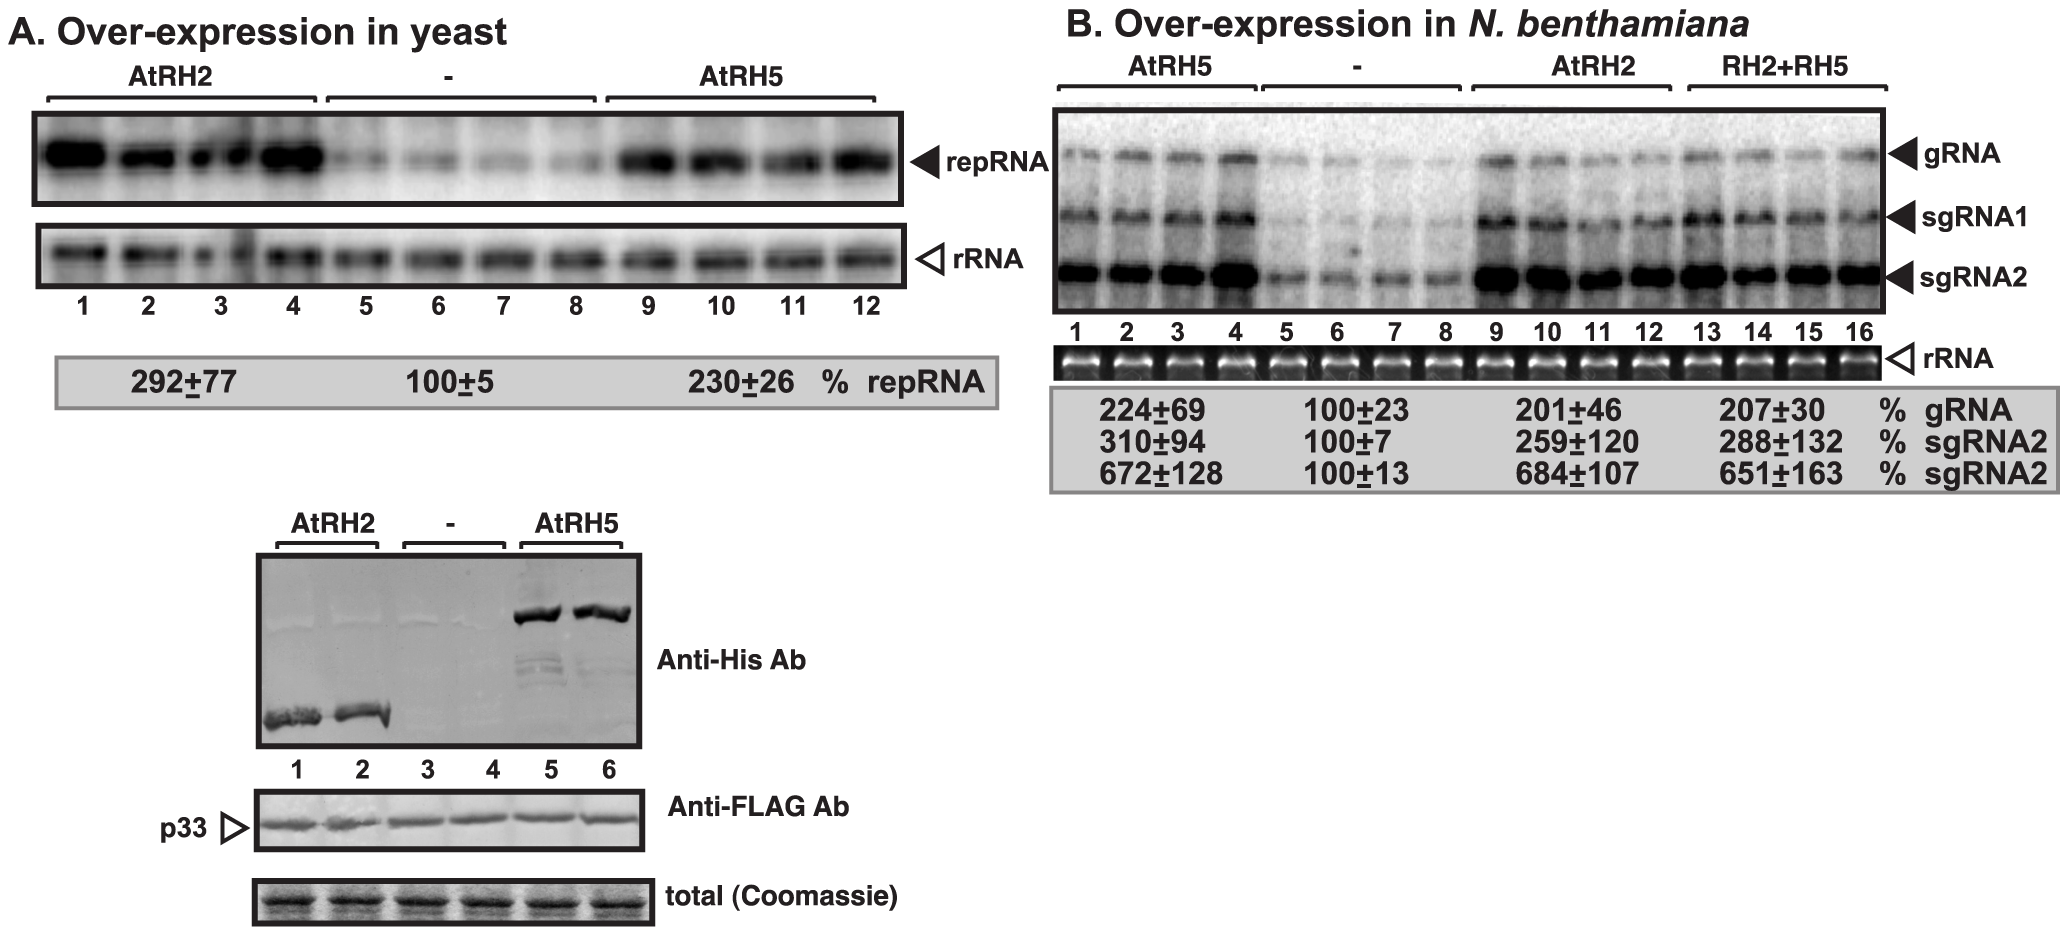 Stimulation of tombusvirus RNA accumulation by over-expression of the eIF4IIIA-like AtRH2 and the DDX5-like AtRH5 DEAD-box helicases in yeast and <i>N. benthamiana</i>.